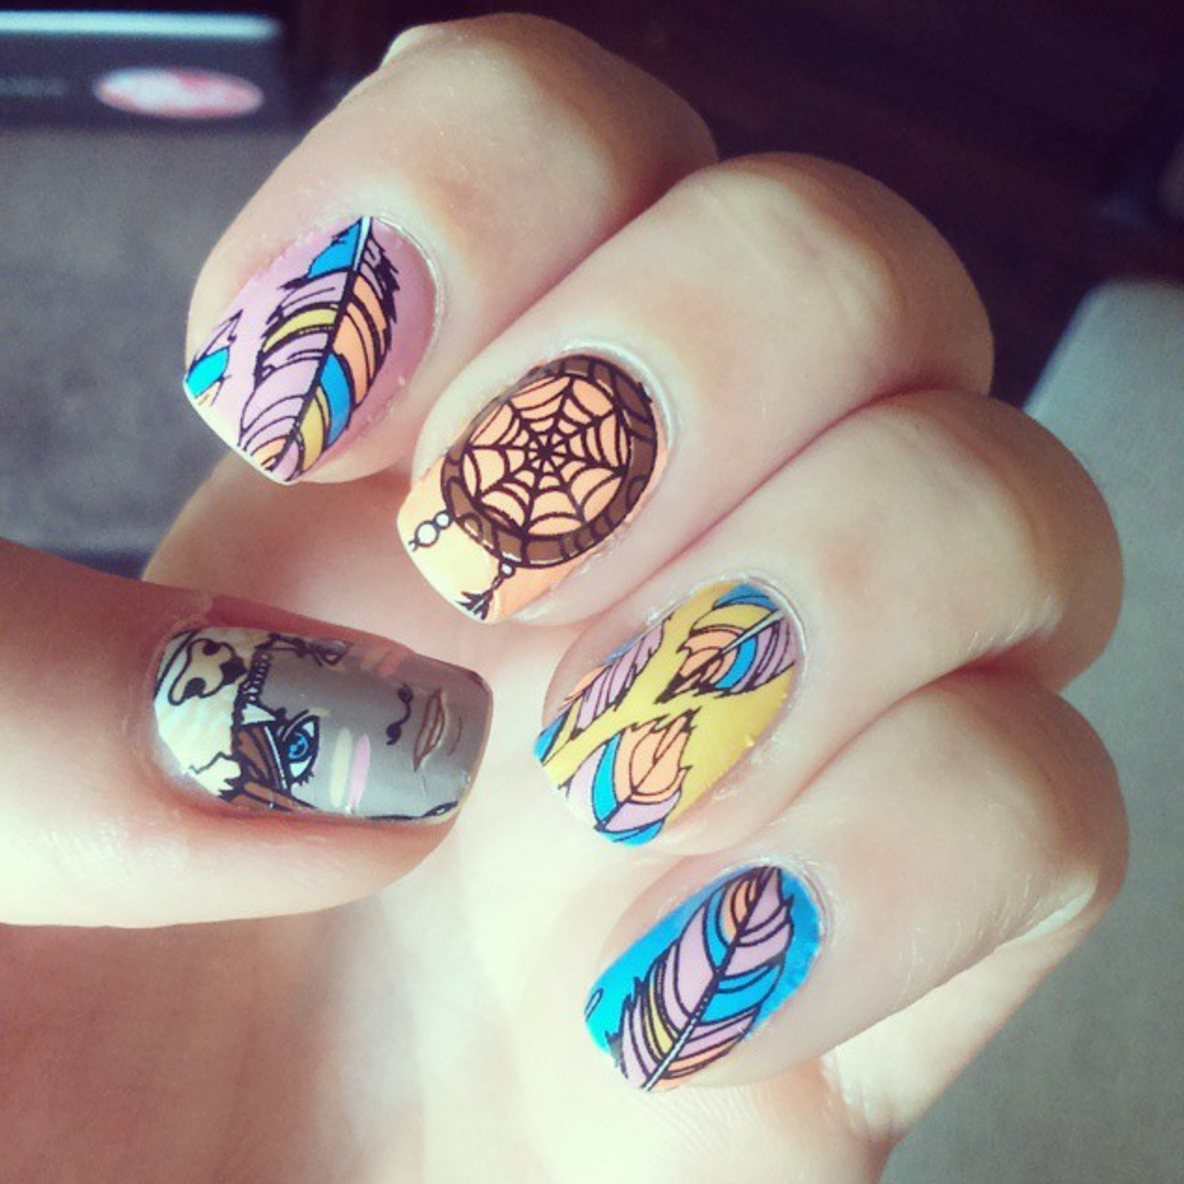 Take Flight - nail wraps - Scratch - 6